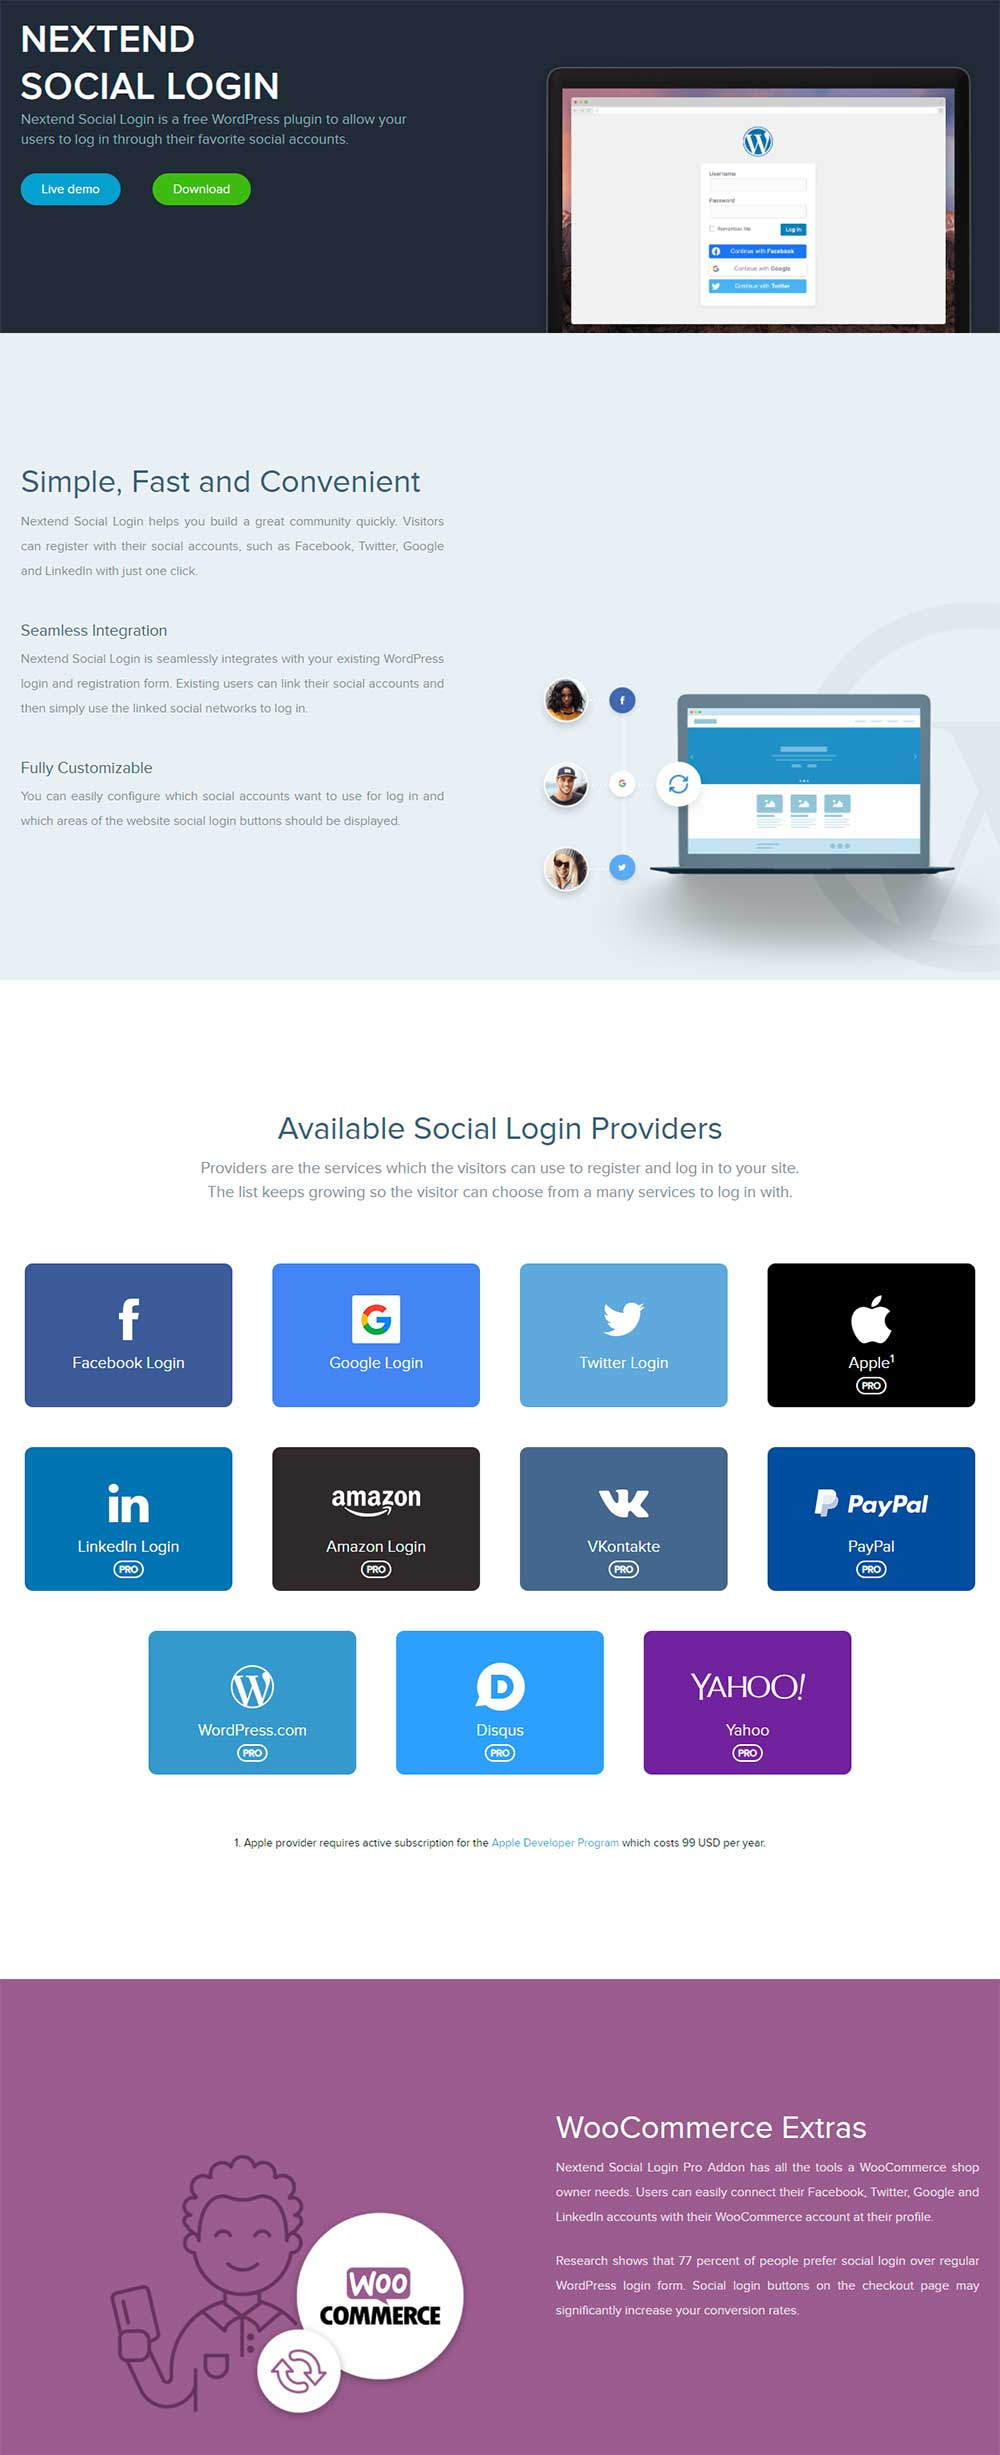 Nextend Social Login - WordPress Login & Registration Plugin